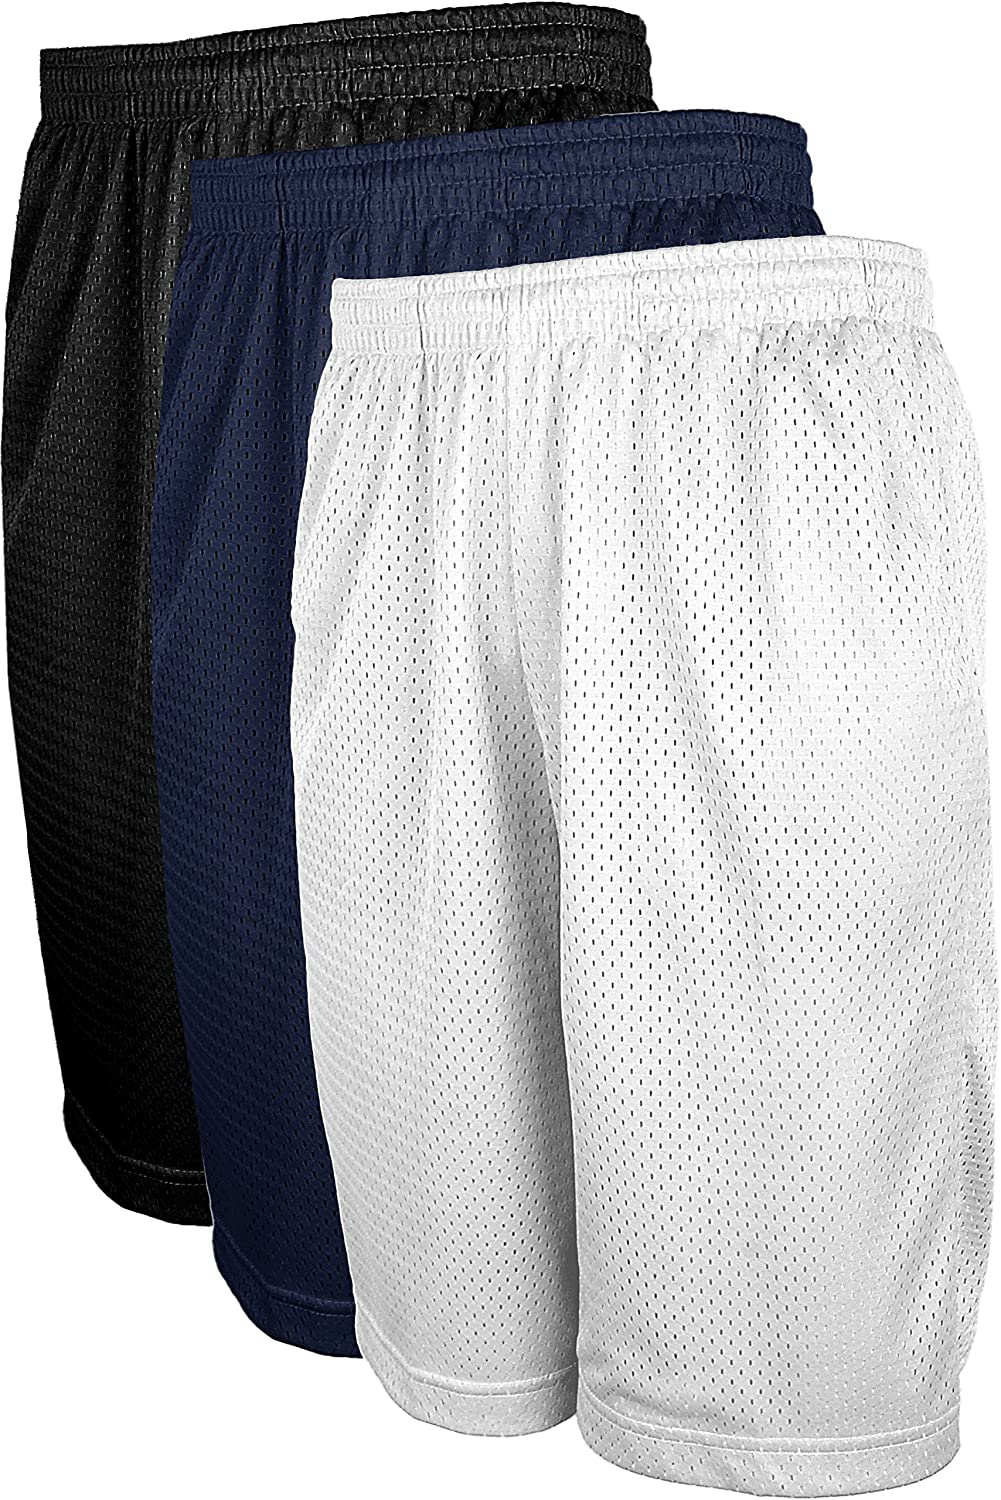 OLLIE San High quality Diego Mall ARNES Mesh Basketball Shorts Athletic Gym Workout for Men